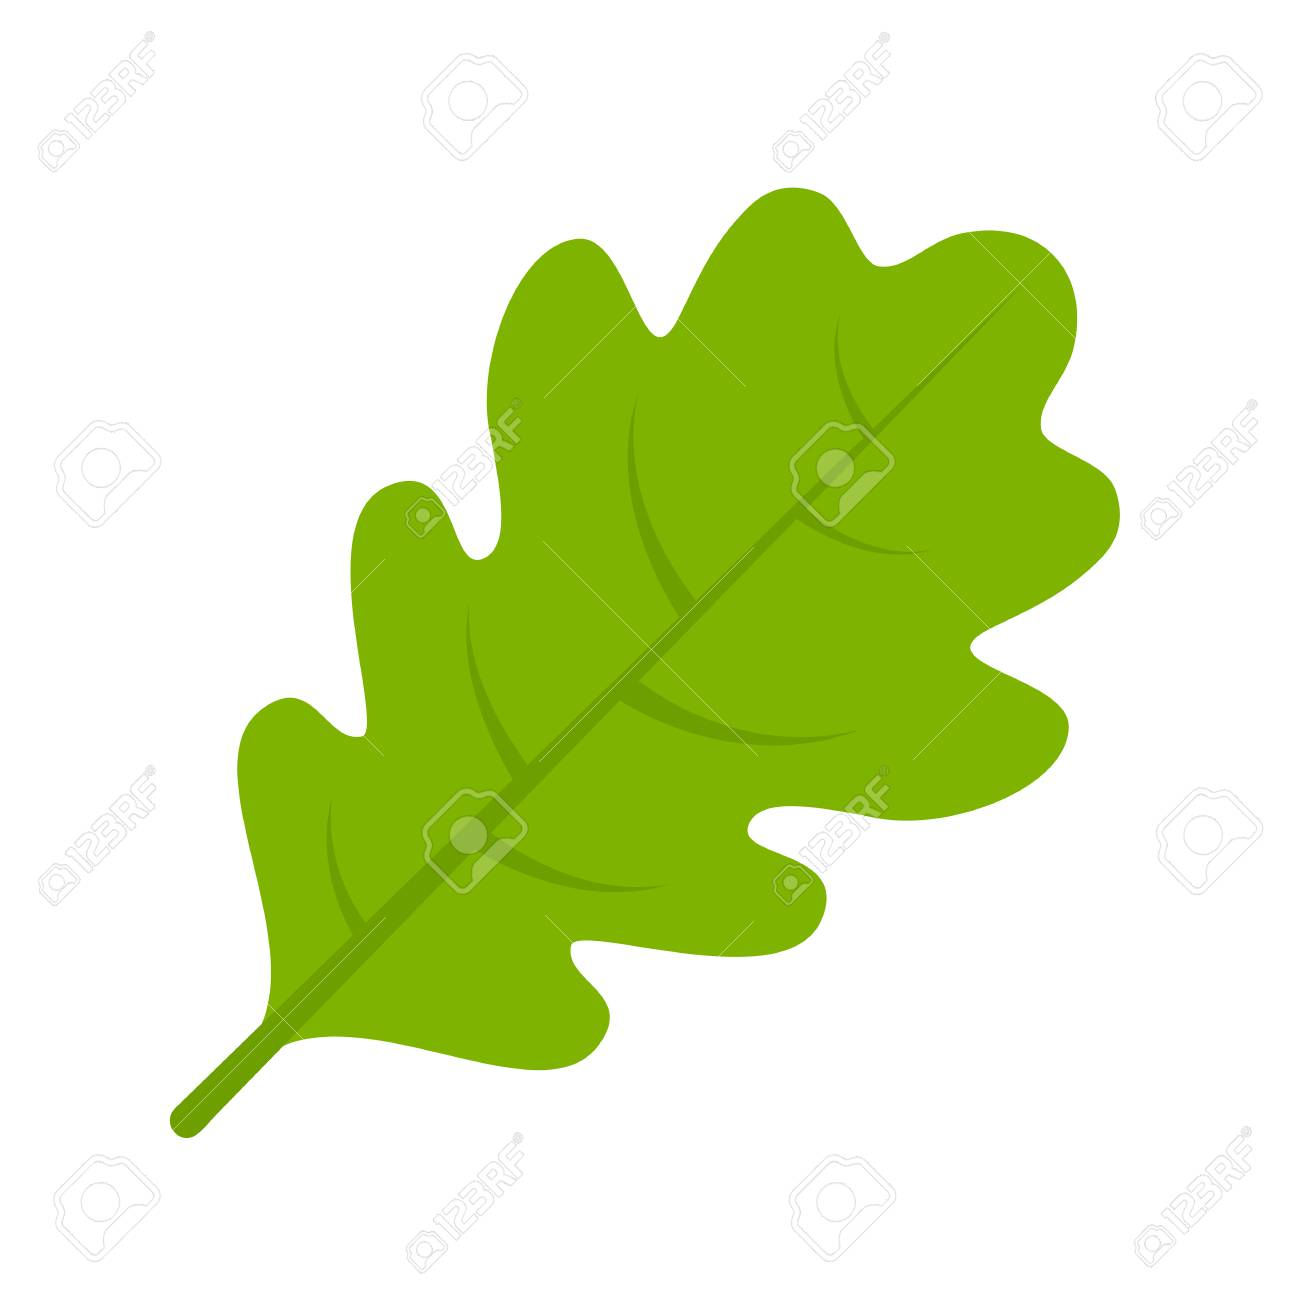 green oak leaf vector illustration royalty free cliparts vectors rh 123rf com fall leaf vector art pot leaf vector art